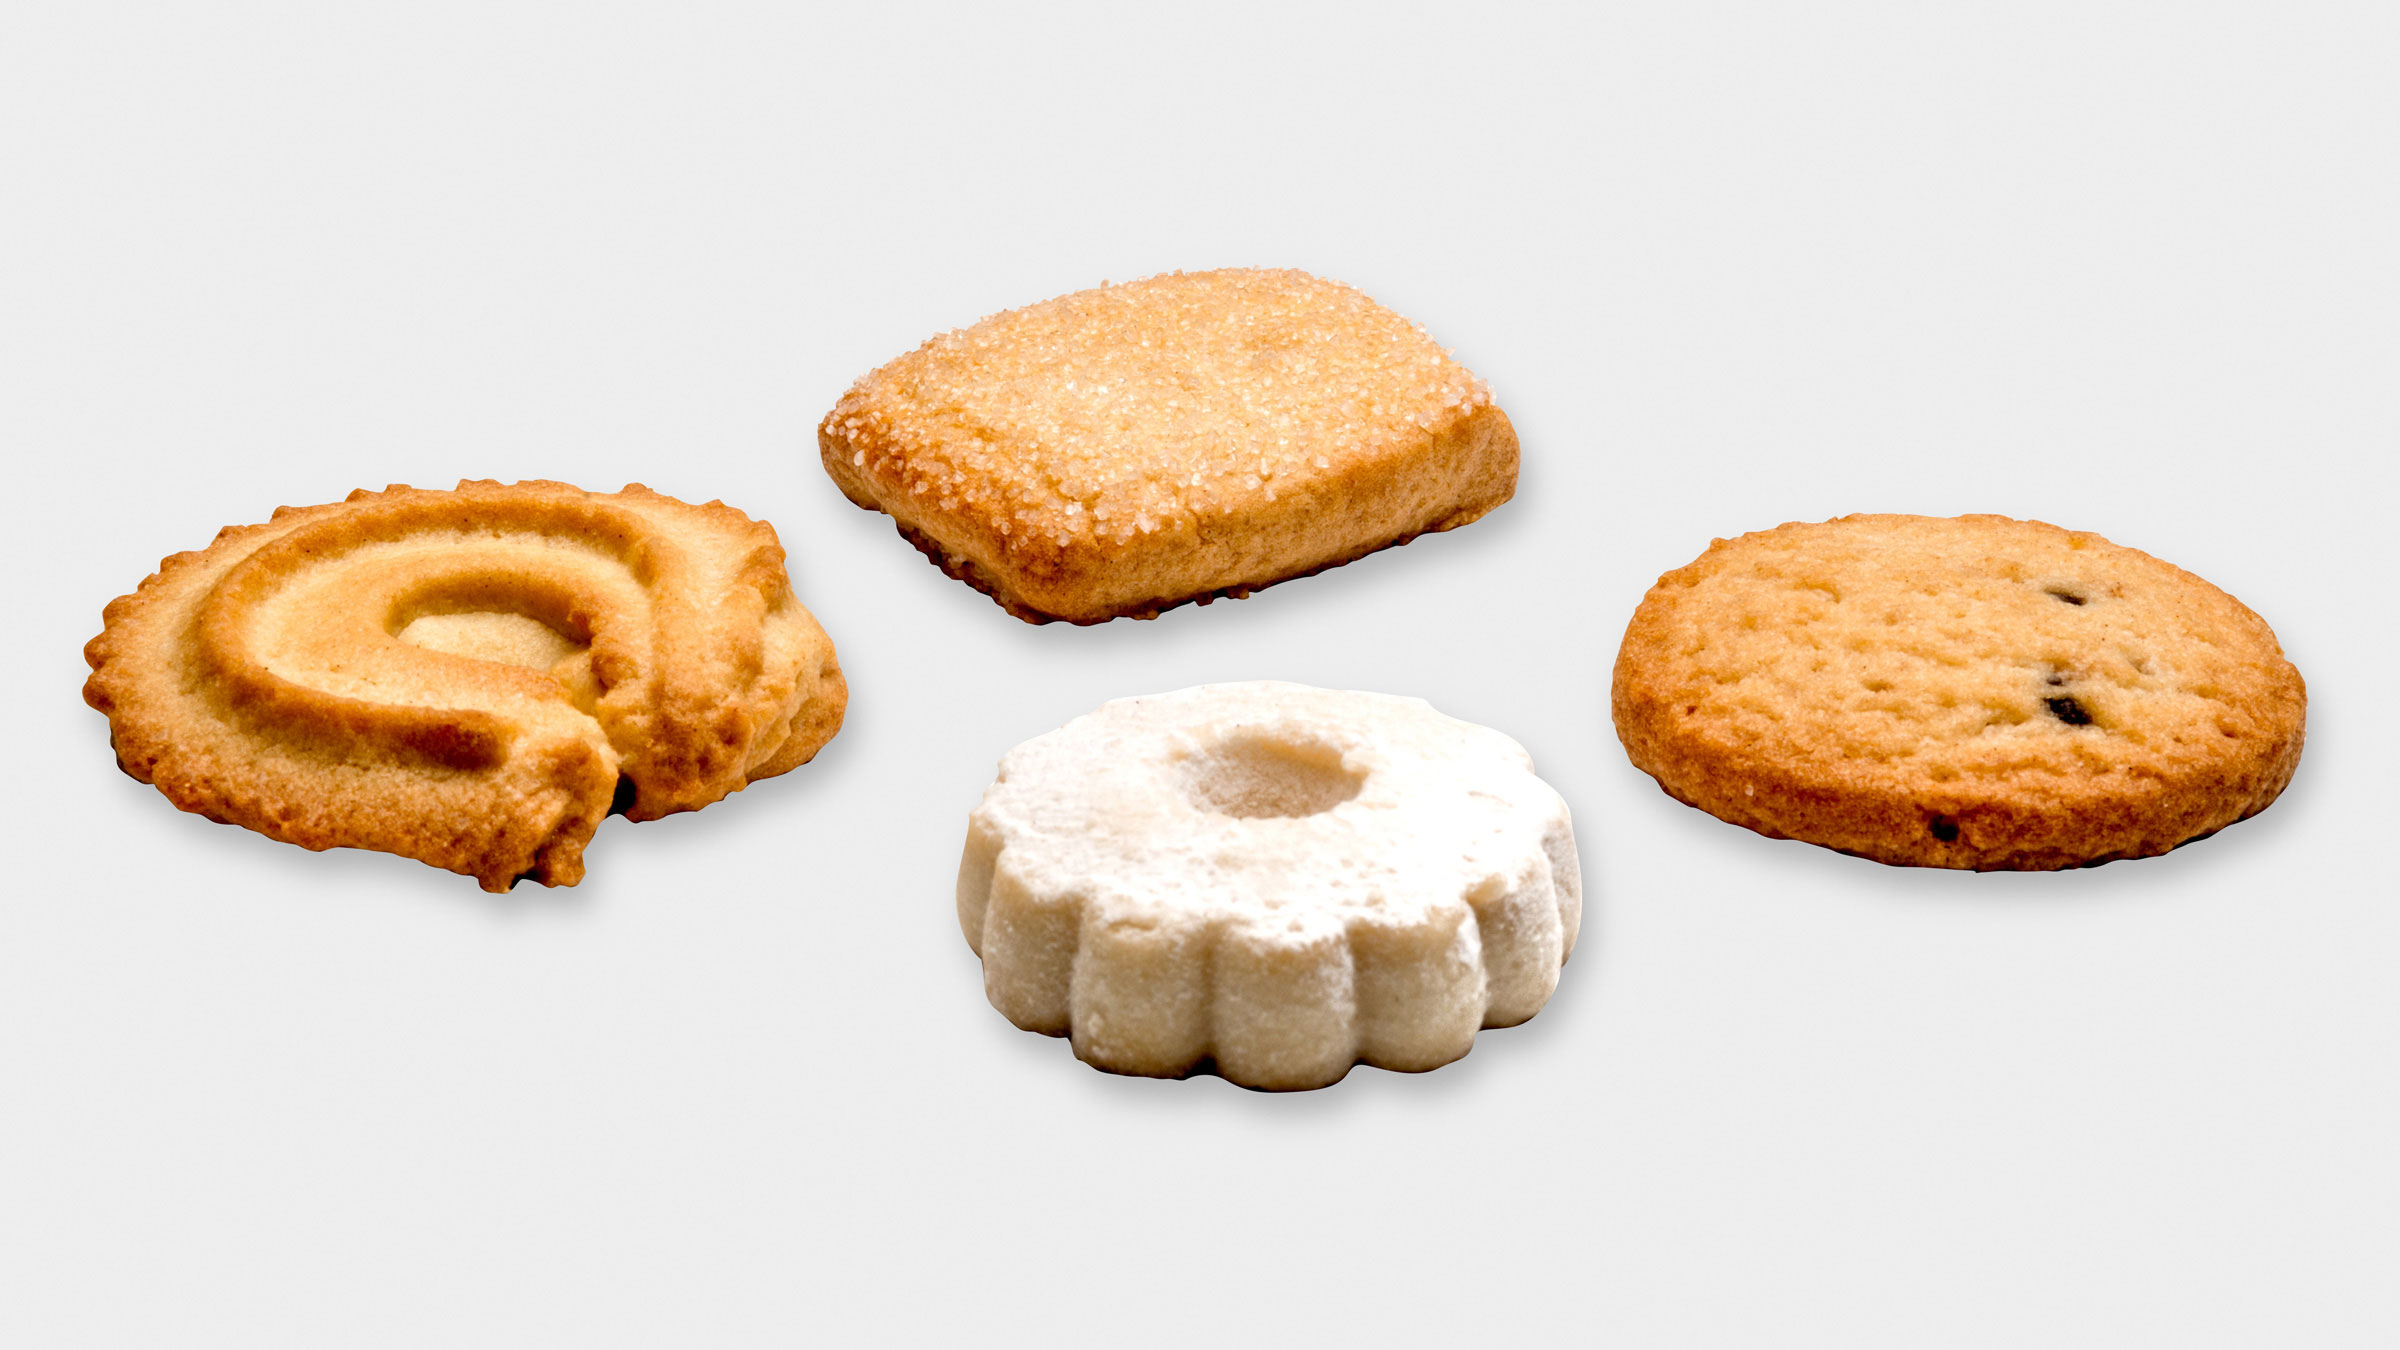 Assorted biscuits